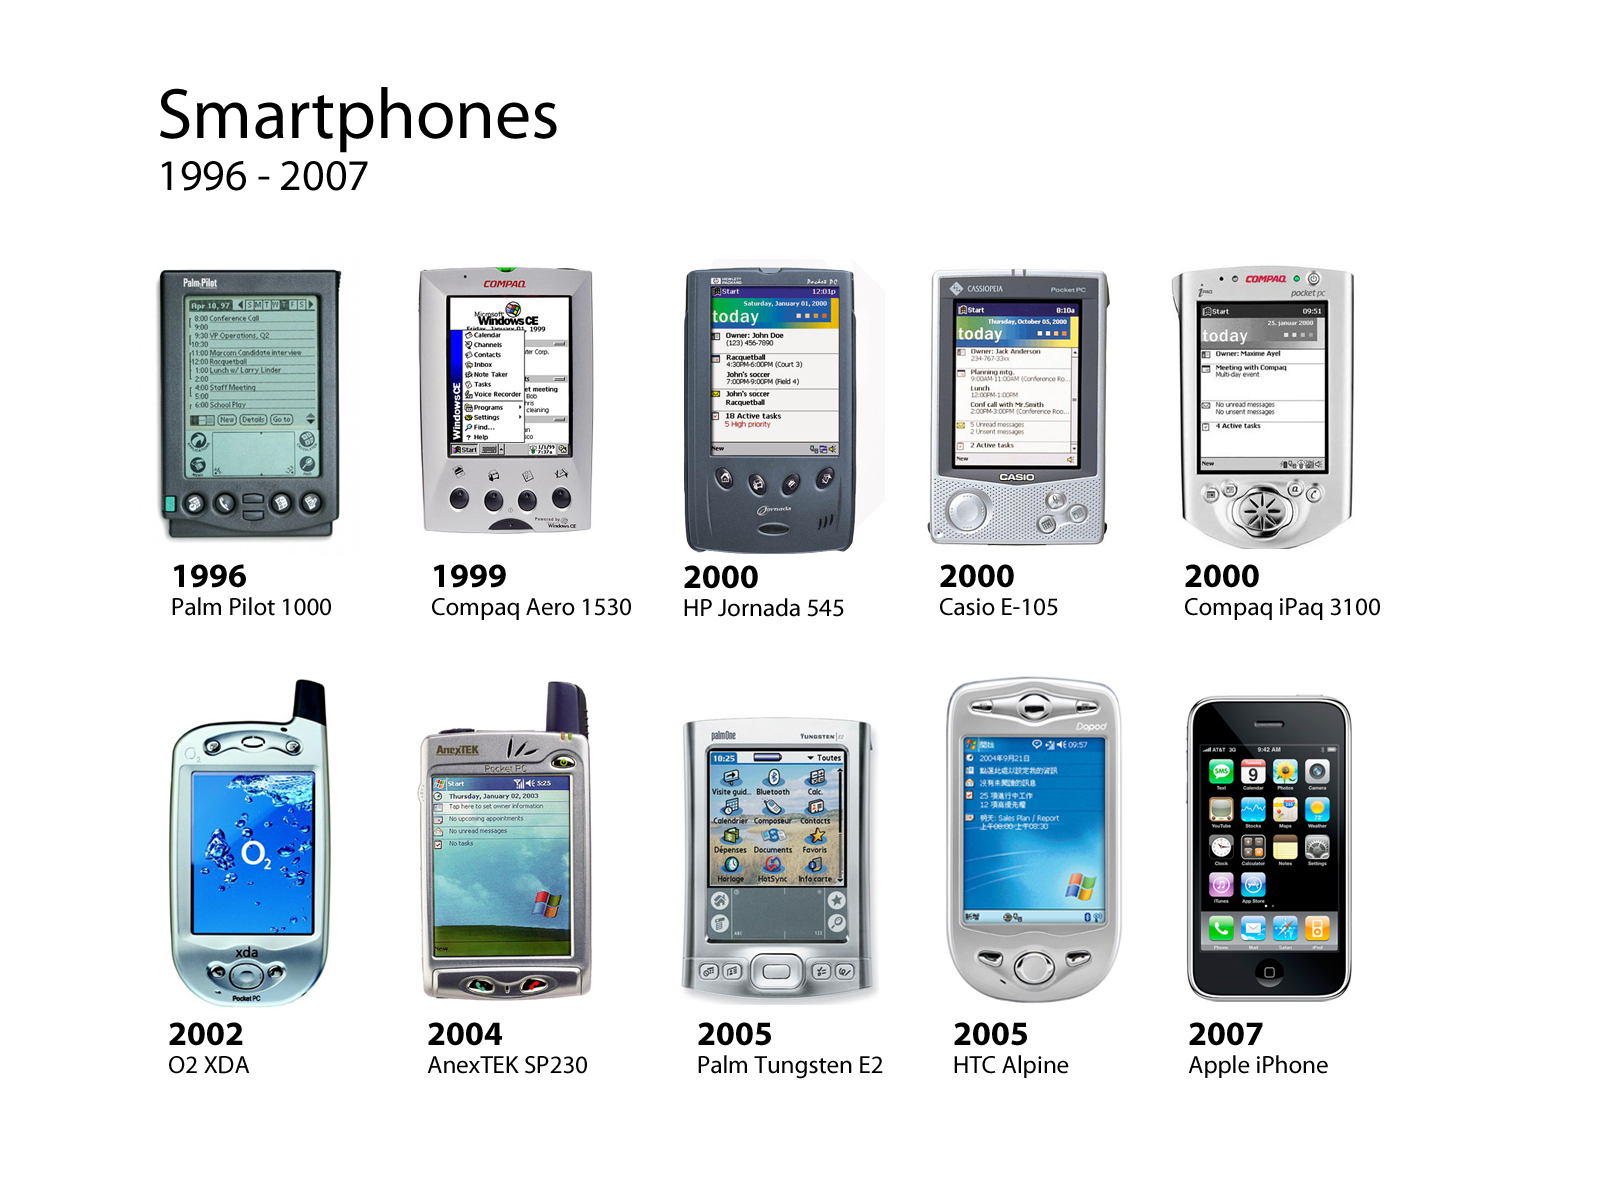 Apple Did Not Invent The Smartphone